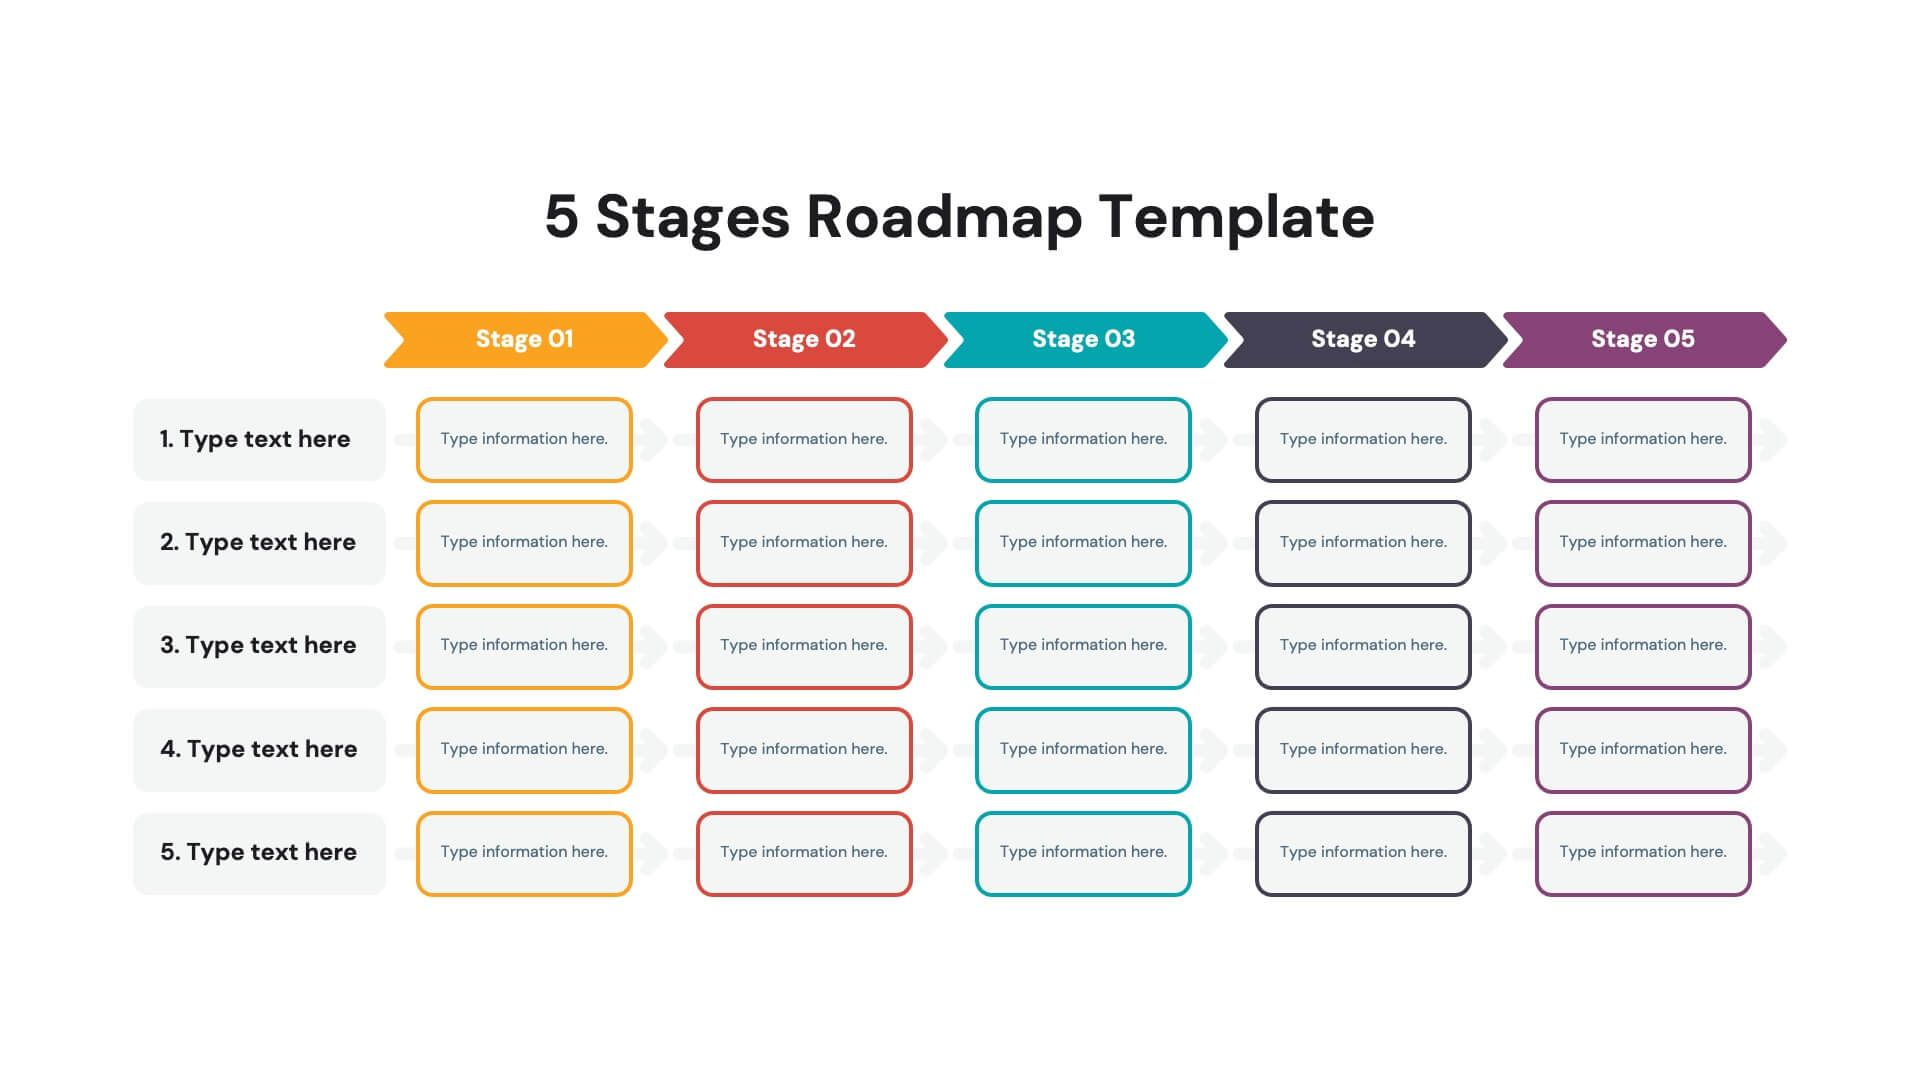 5 Stages Roadmap Powerpoint Template Free Download Now In 2021 Powerpoint Templates Roadmap Template Powerpoint